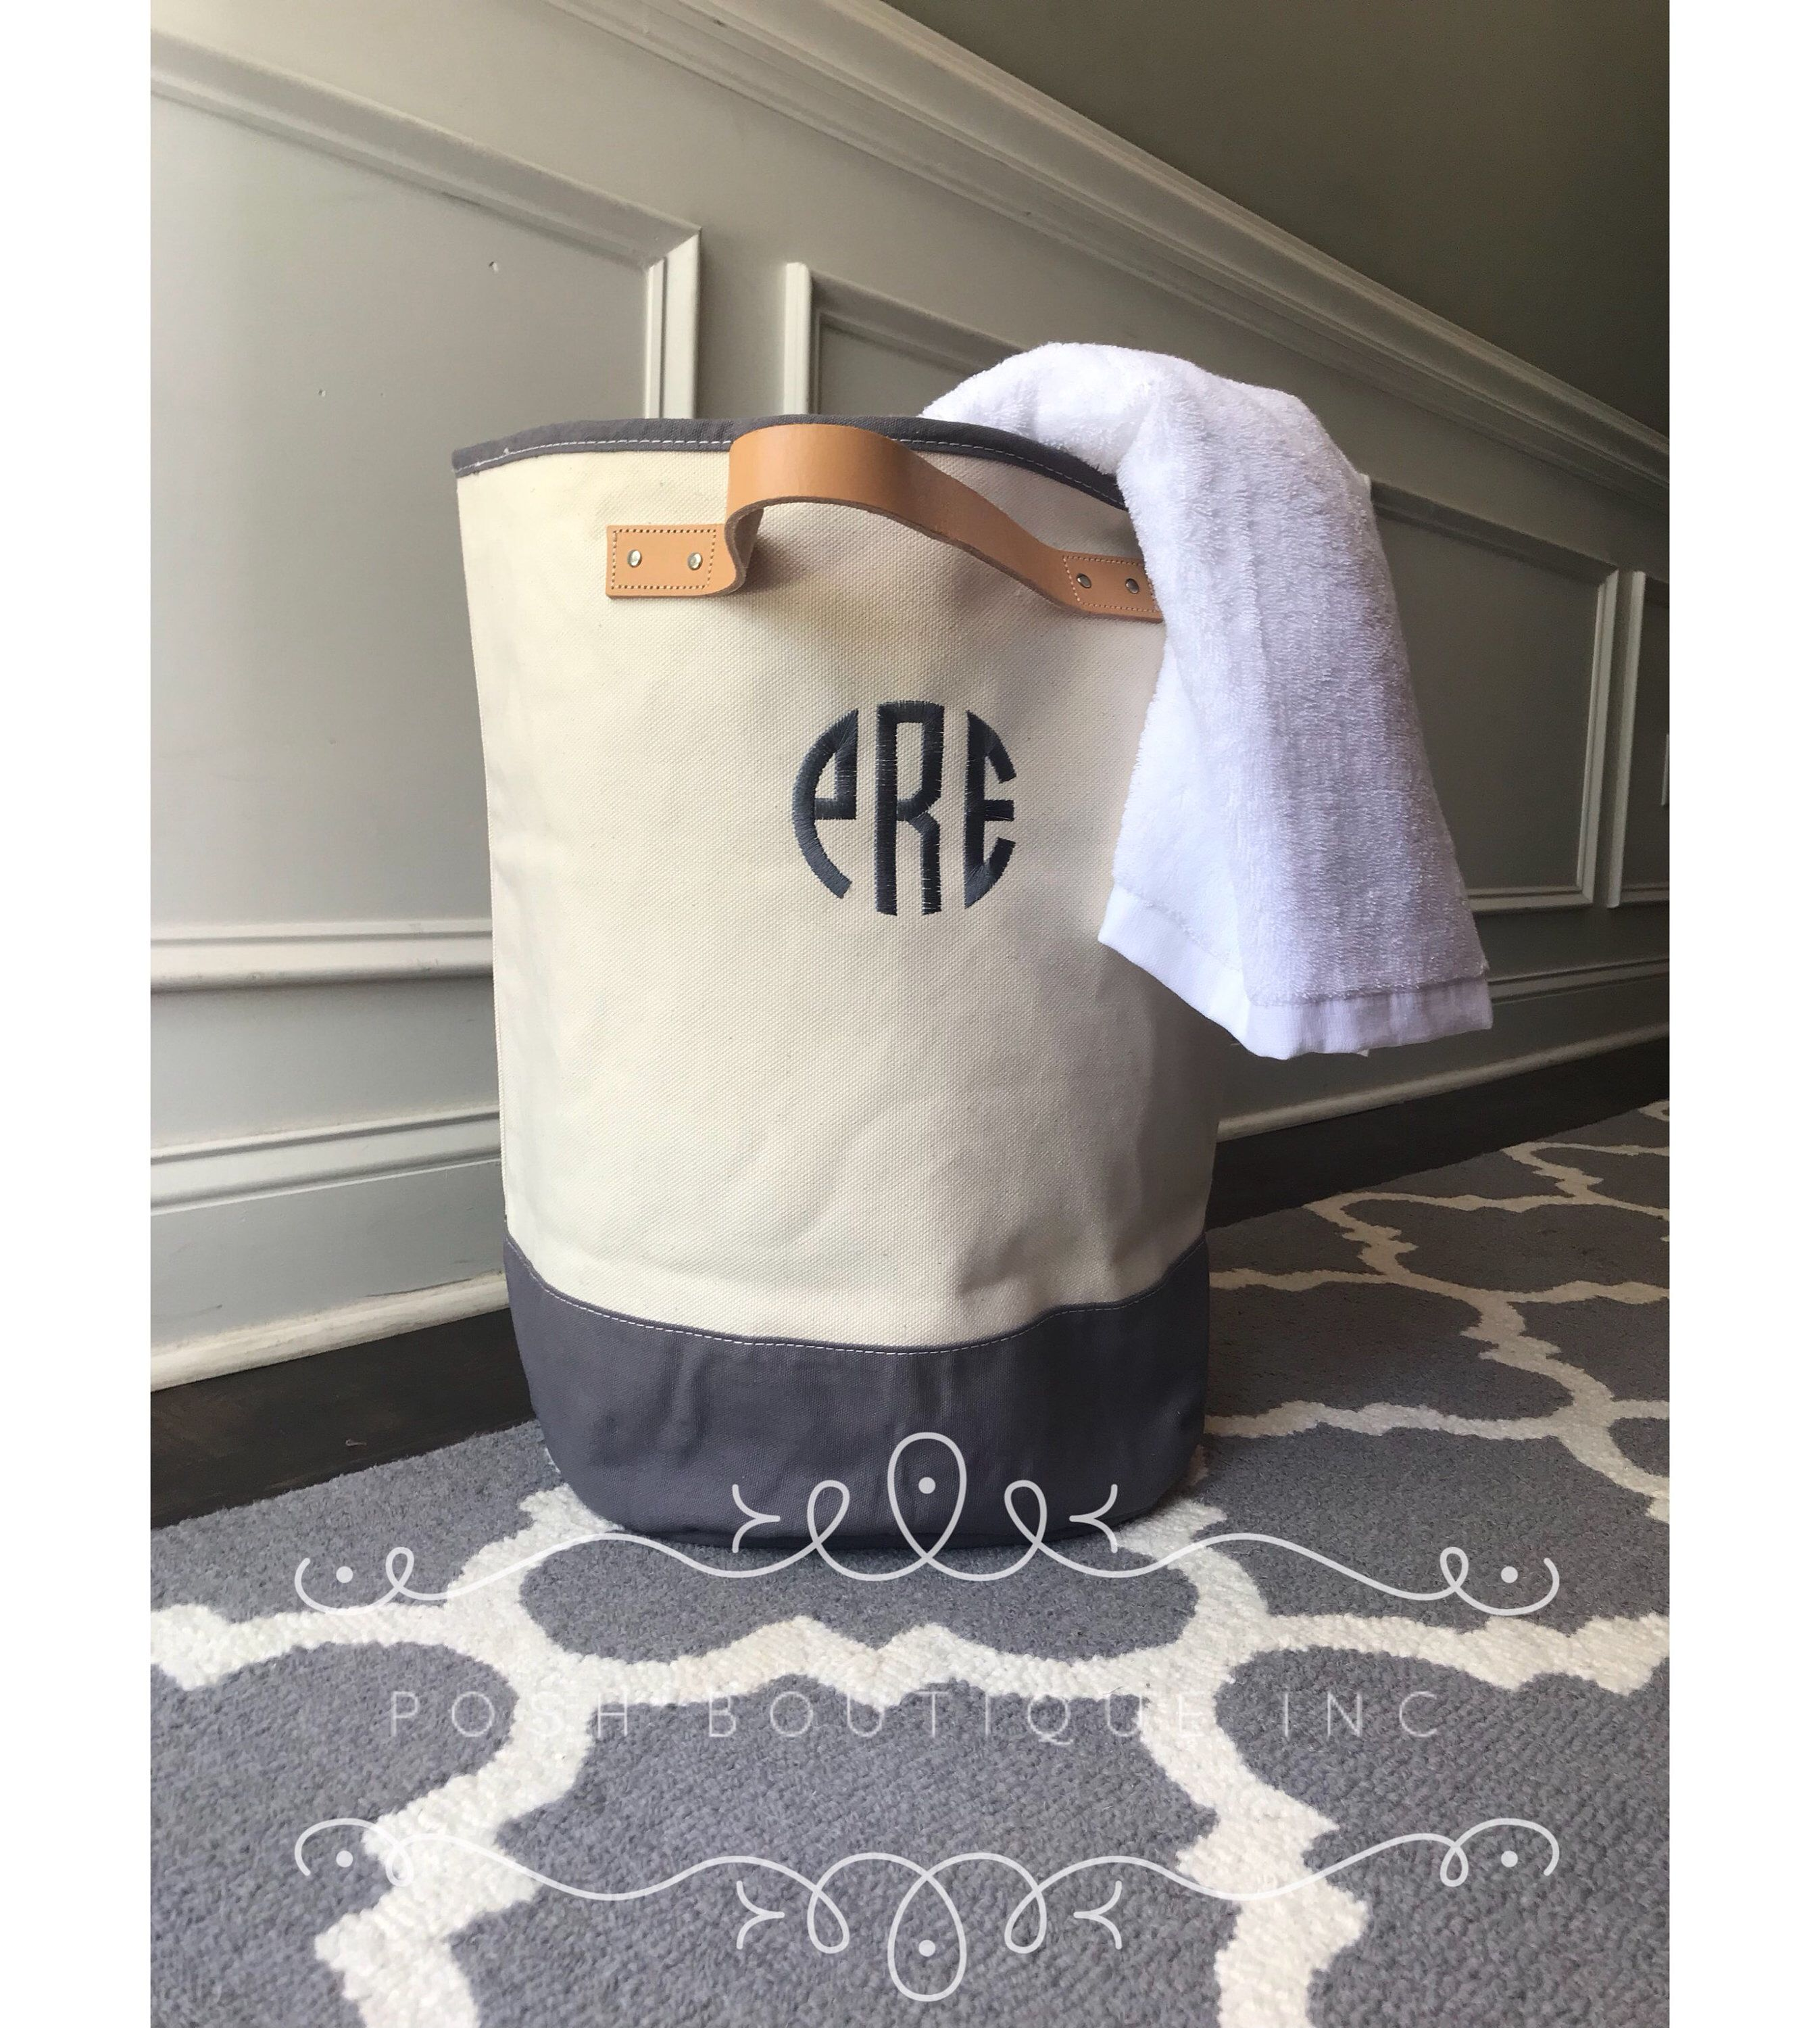 Monogram Laundry Hamper Laundry Bag Dorm Life Must Have Laundry Tote Bag Graduation Gifts Discounts On